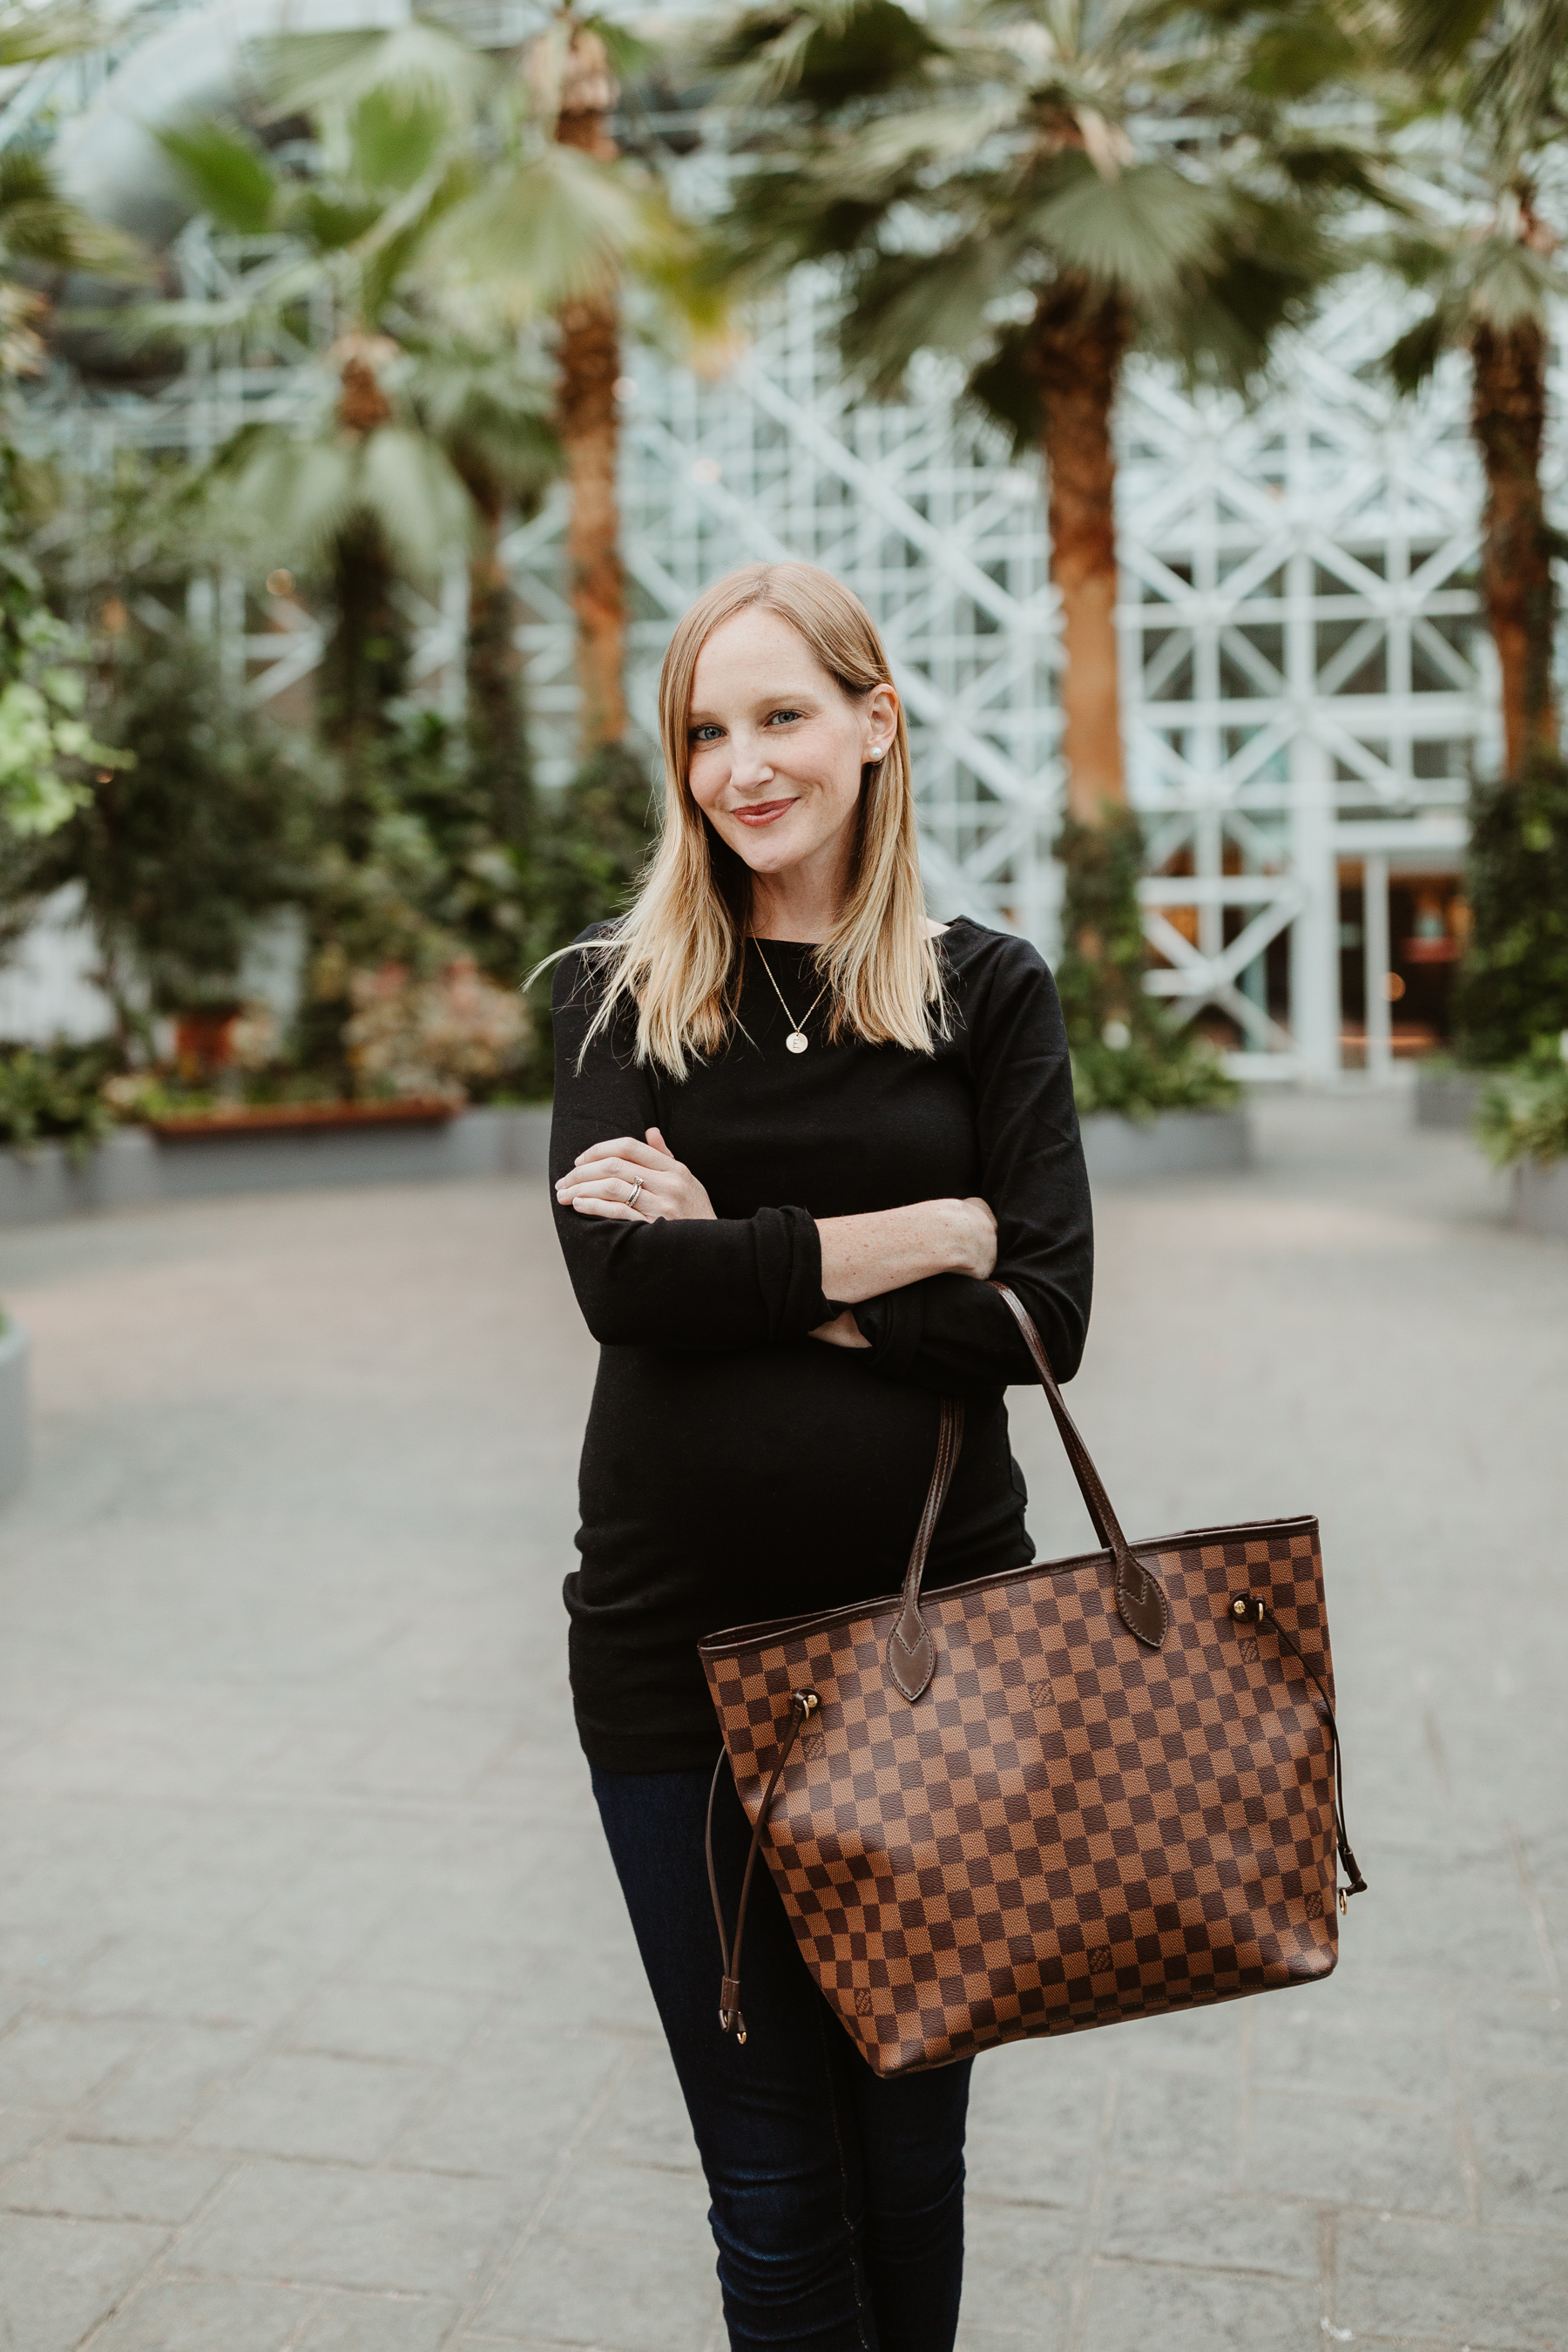 """Kelly's Outfit: Everlane Day Boot c/o / Gold Initial Necklace /Softest """"Modern Boatneck"""" Tee by Gap / Louis Vuitton MM Neverfull Tote / Old Navy Rockstar Jeans"""